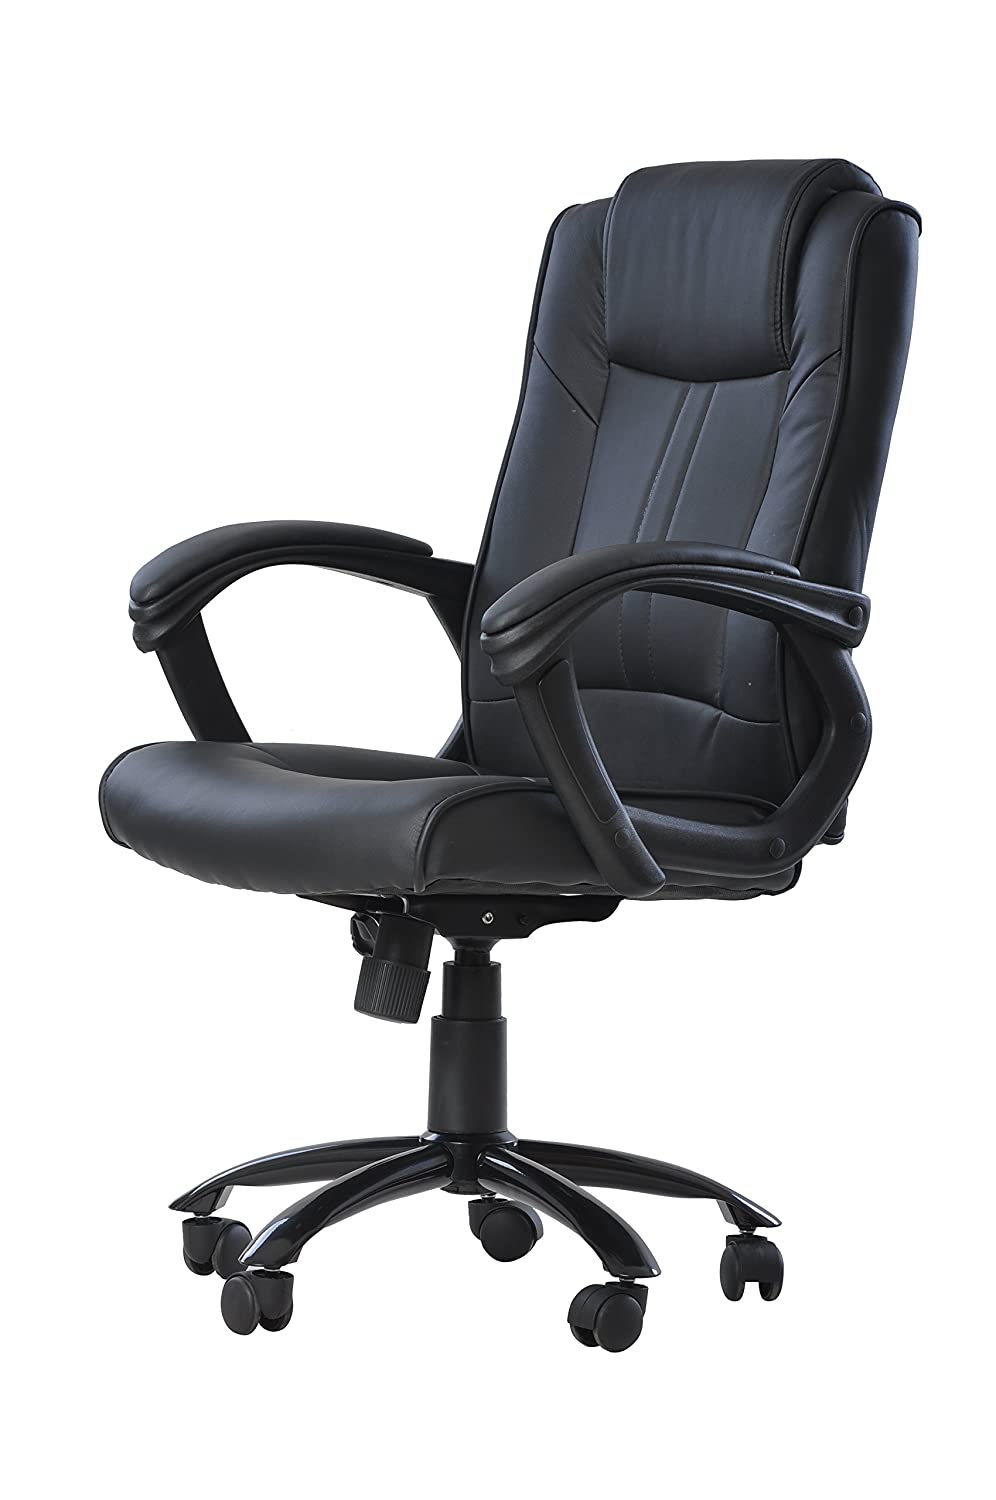 best cheap office chair the most affordable chairs comfy office chair the ultimate guide. Black Bedroom Furniture Sets. Home Design Ideas